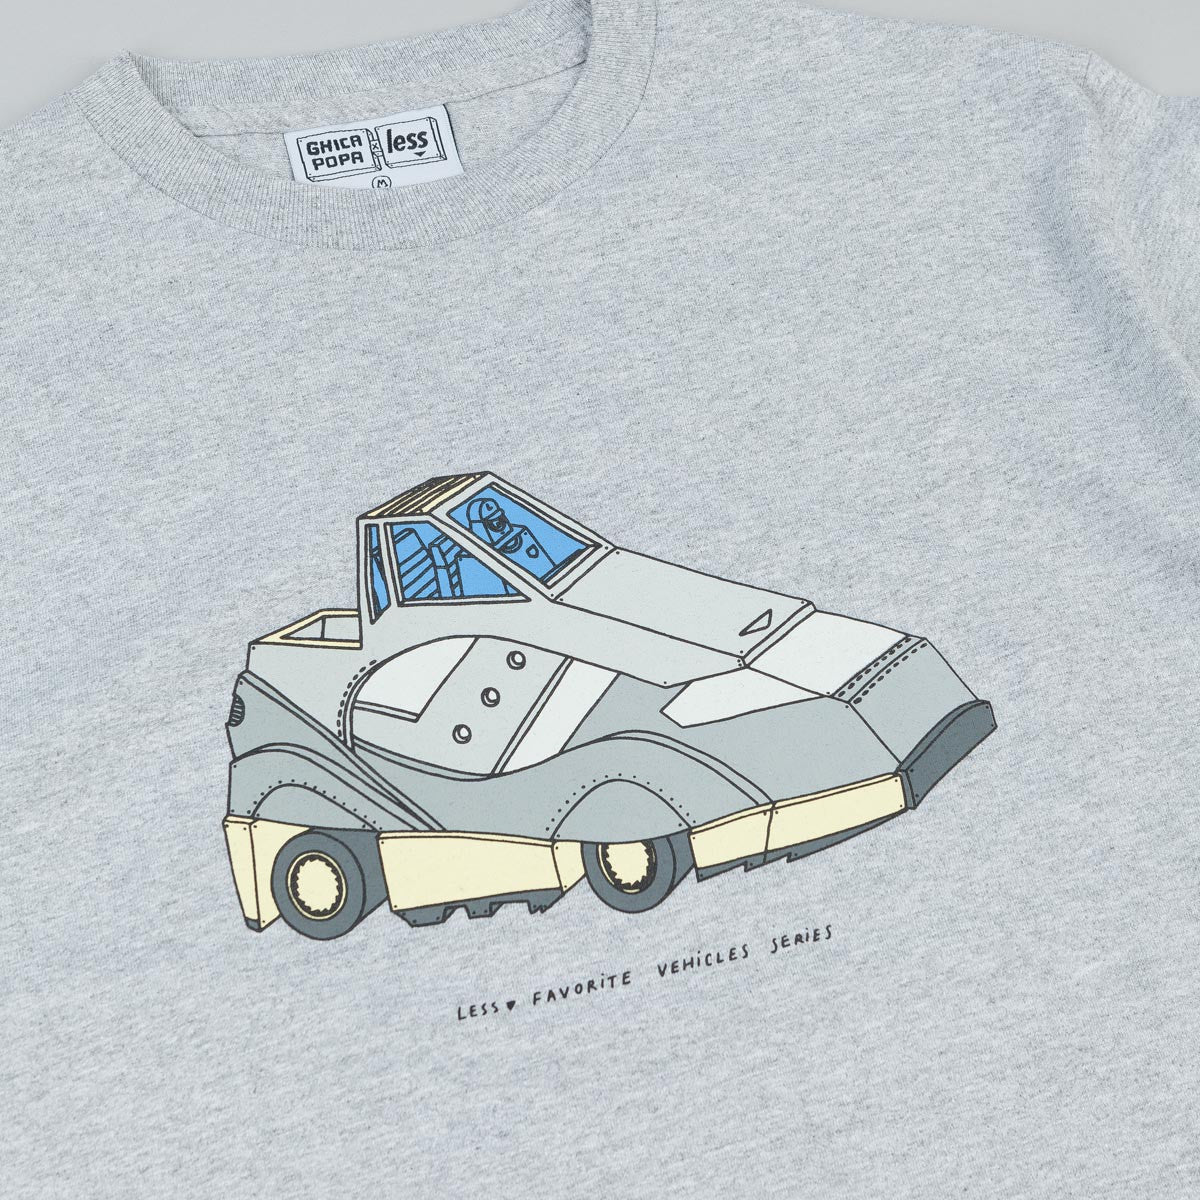 Less x Ghica Popa Vehicles Series G9 Shadow T-Shirt - Grey Heather